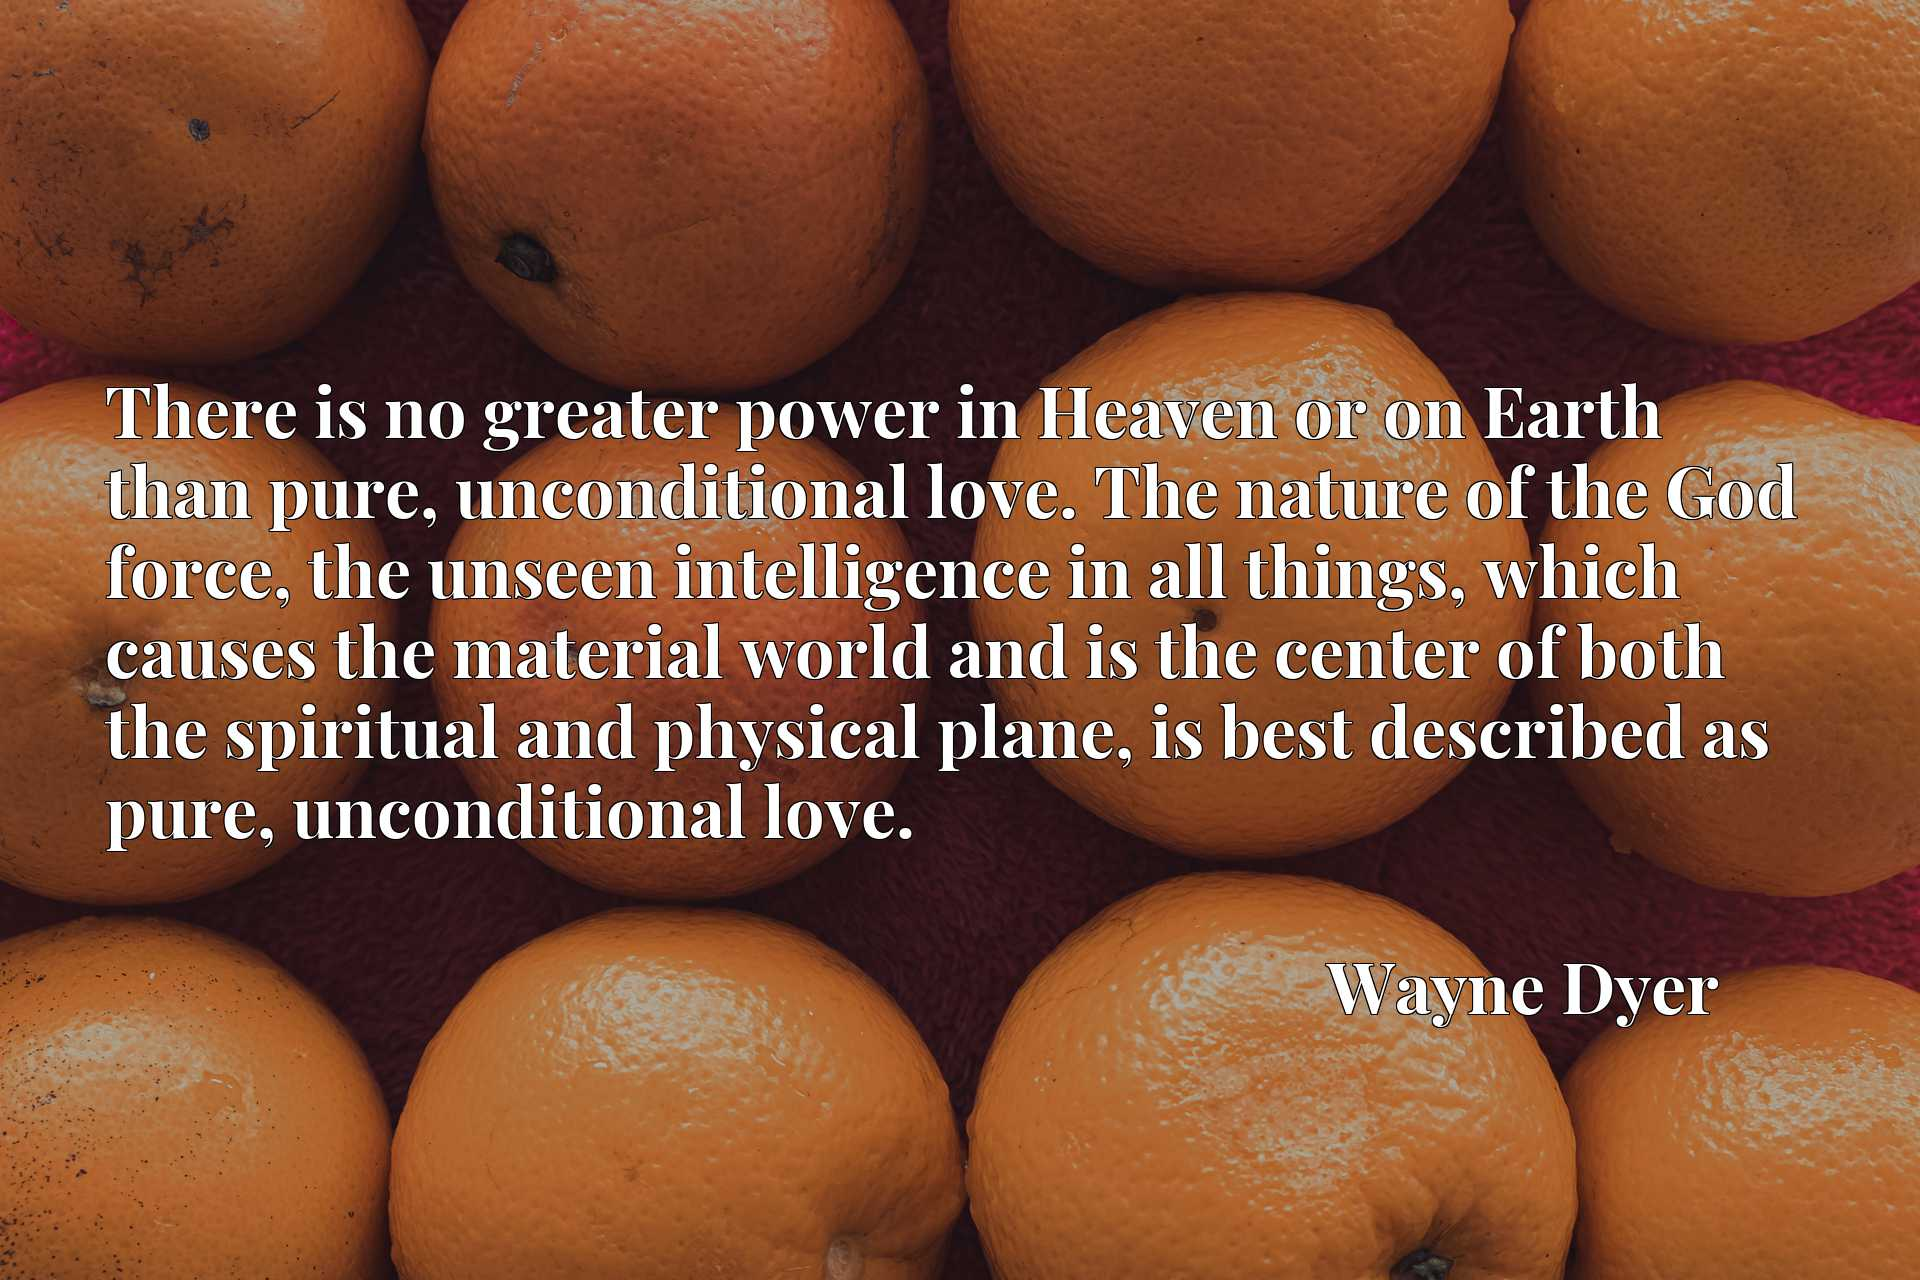 There is no greater power in Heaven or on Earth than pure, unconditional love. The nature of the God force, the unseen intelligence in all things, which causes the material world and is the center of both the spiritual and physical plane, is best described as pure, unconditional love.